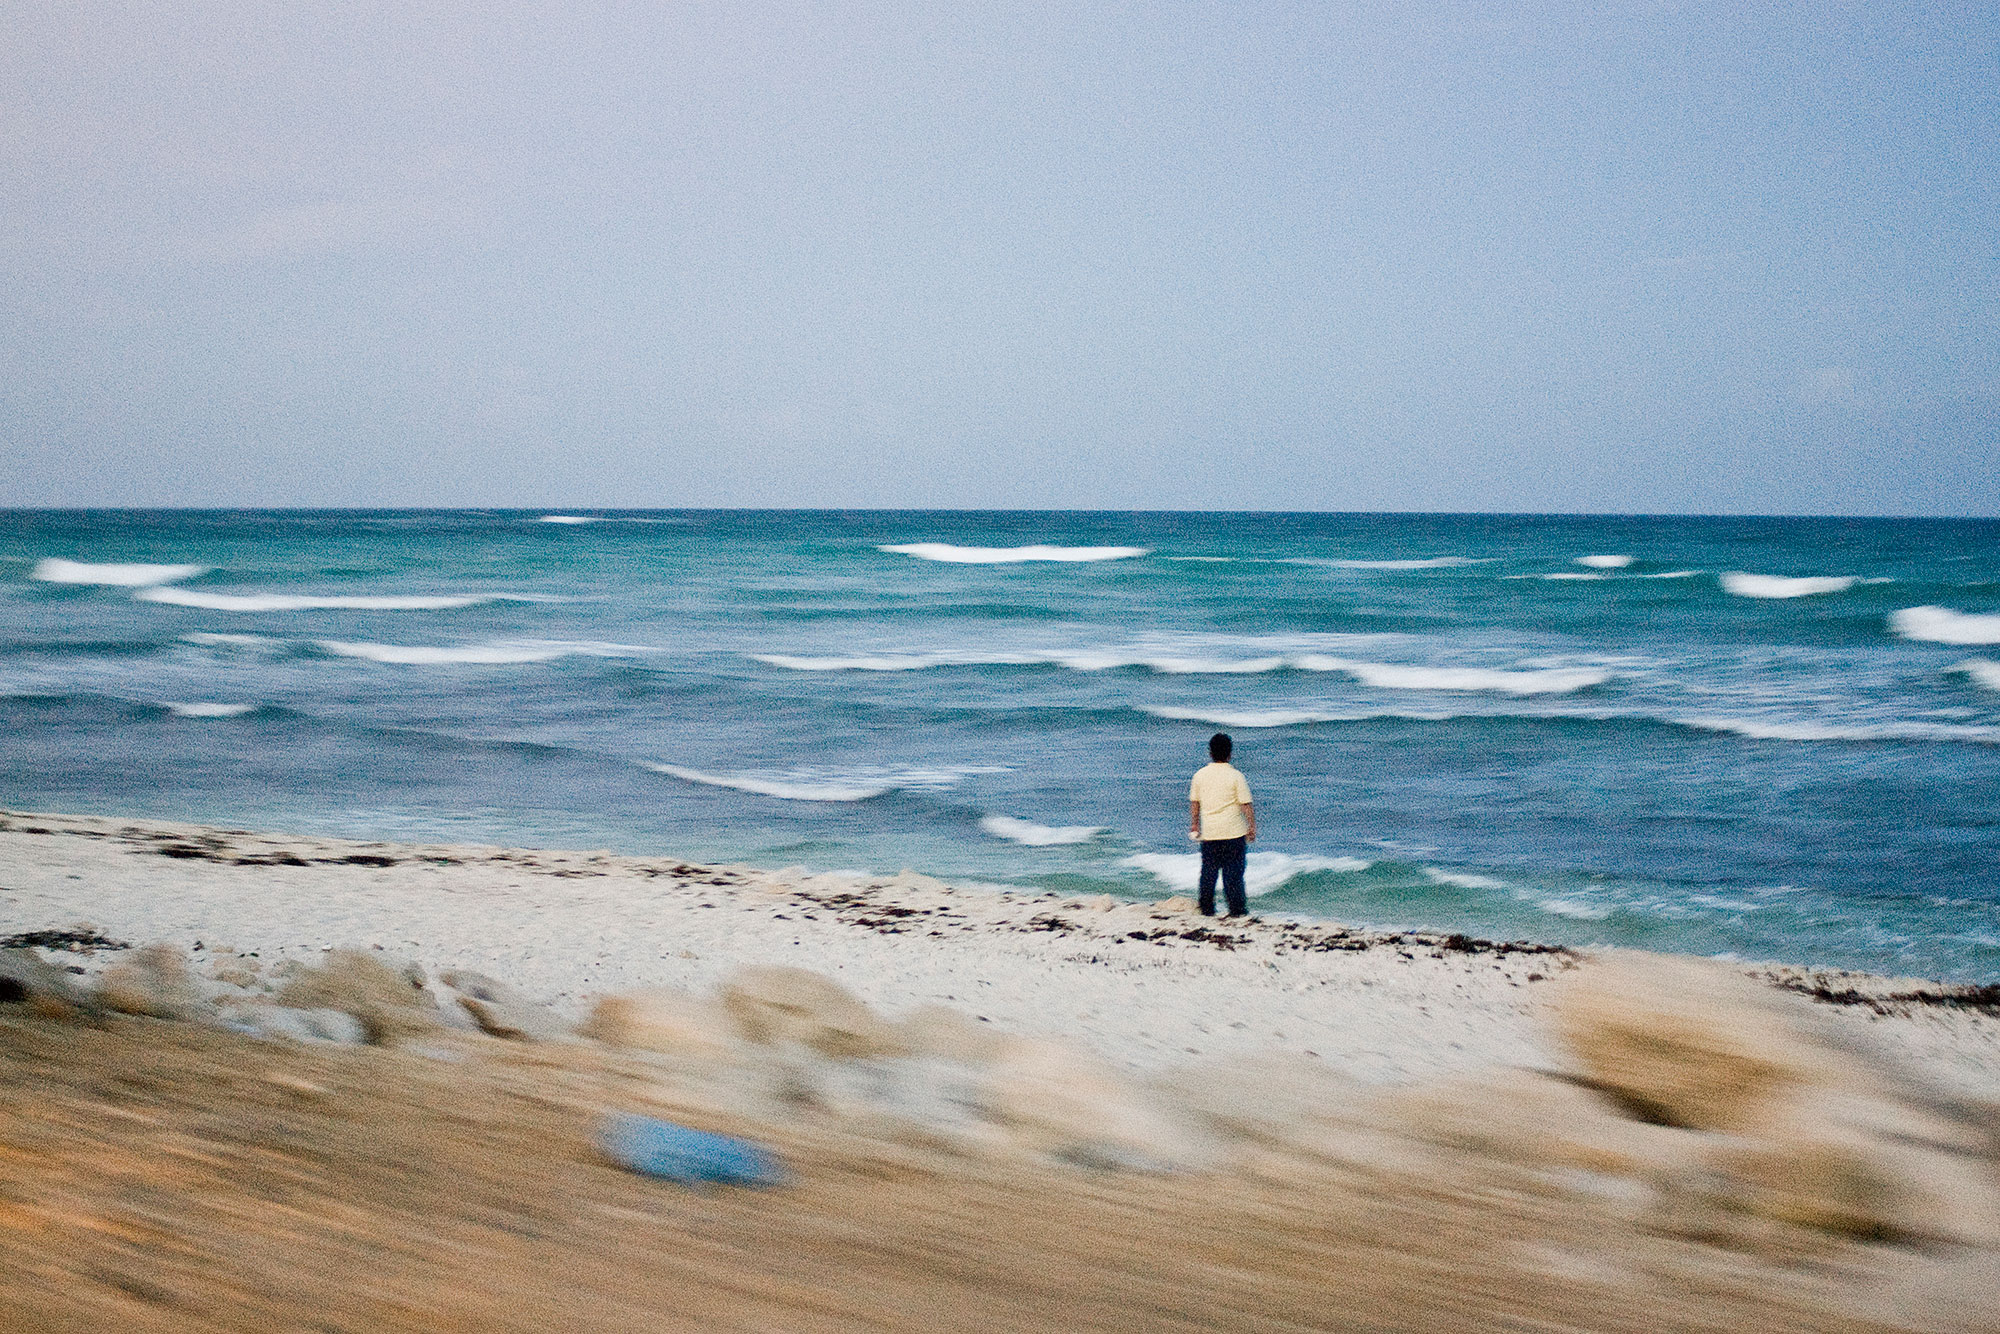 Thinker by the Ocean